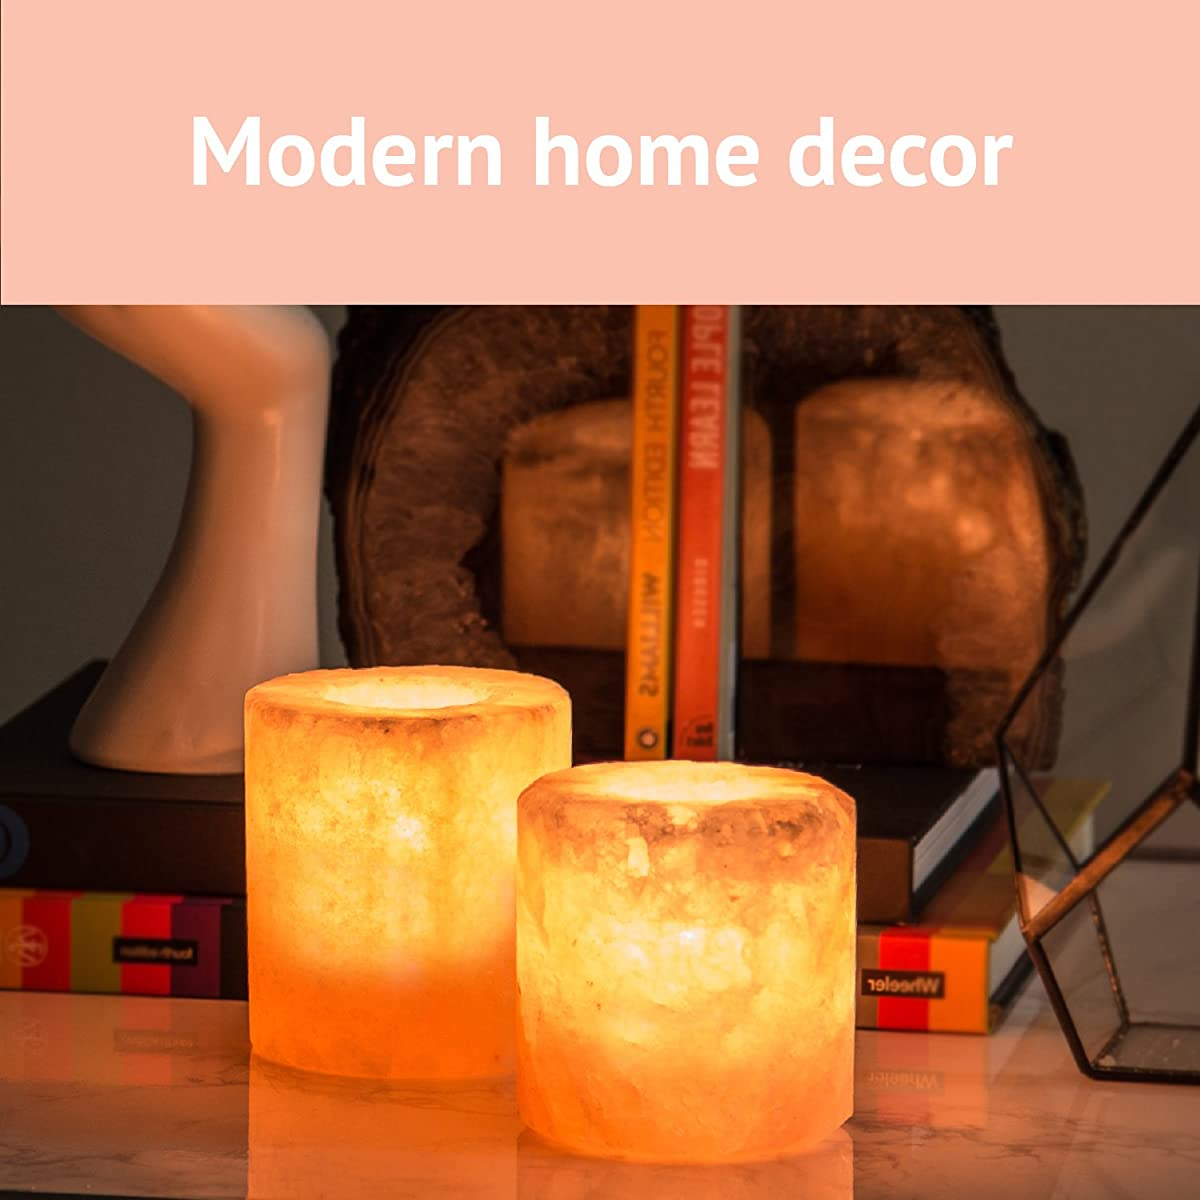 Crystal Allies Pack of 2 Natural Pink Himalayan Salt Tea Light Candle Holders with Authentic Crystal Allies Info Card